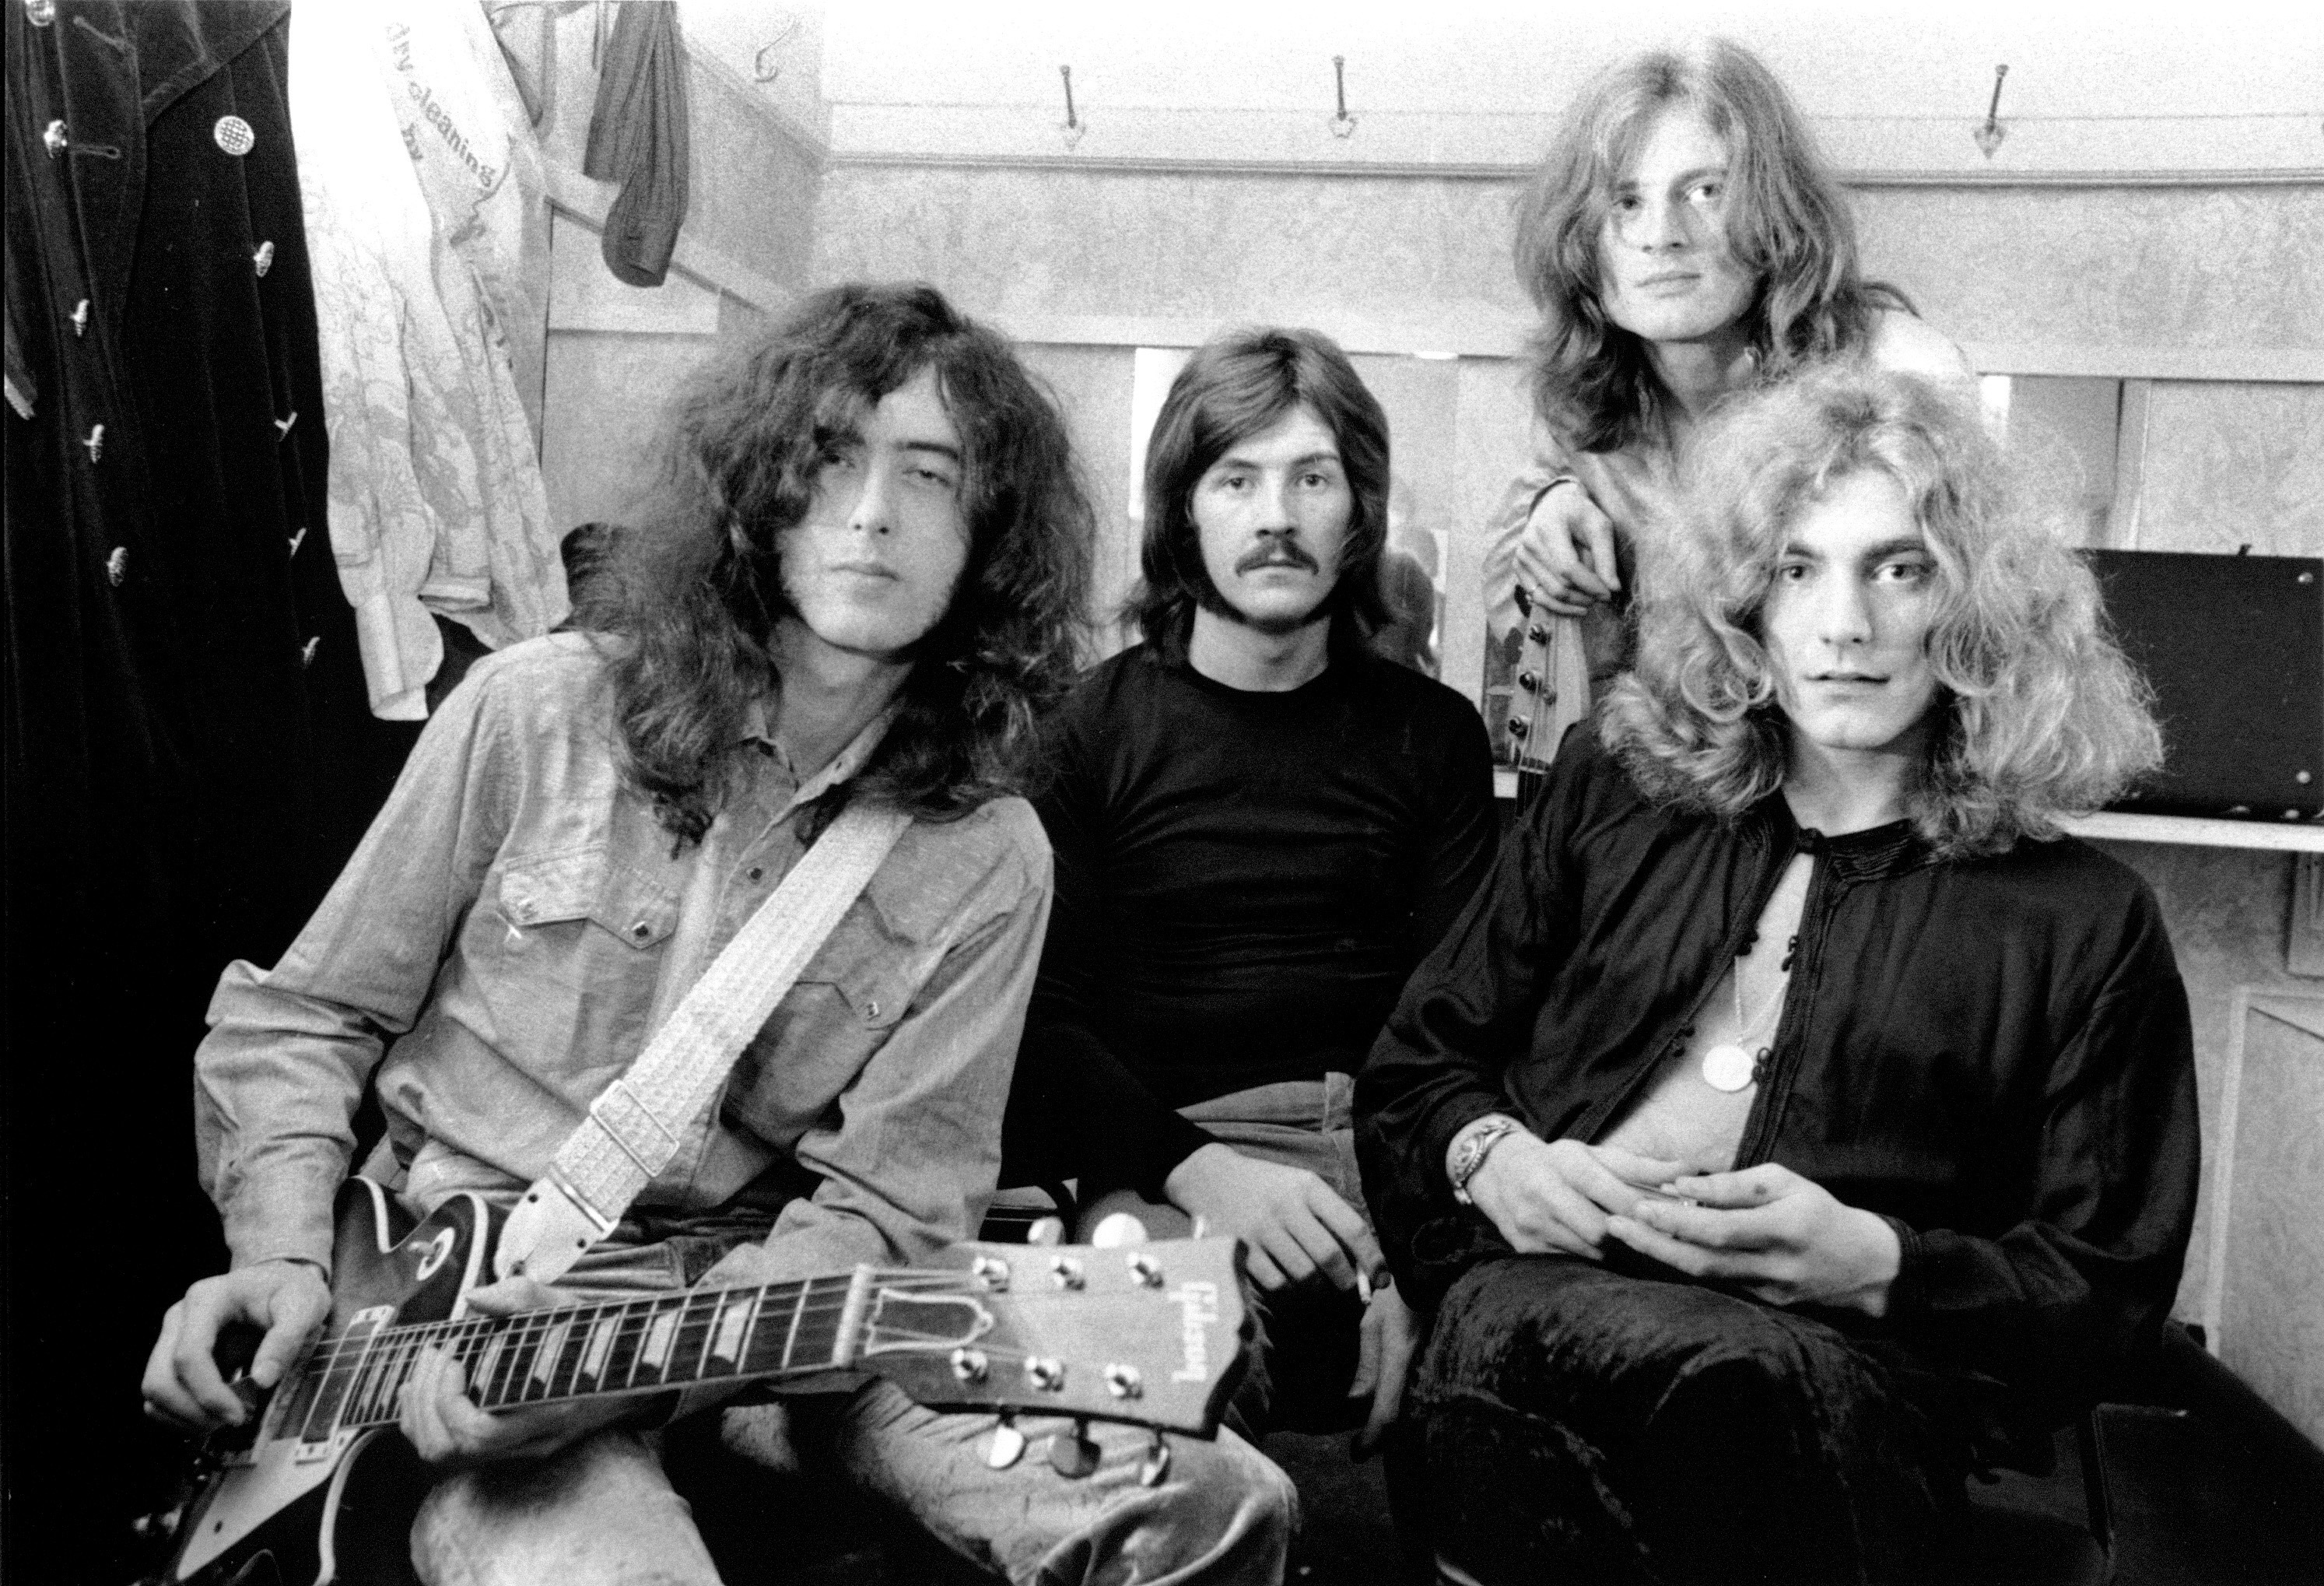 Led Zeppelin (Jimmy Page, John Bonham, John Paul Jones, Robert Plant) in 1969.